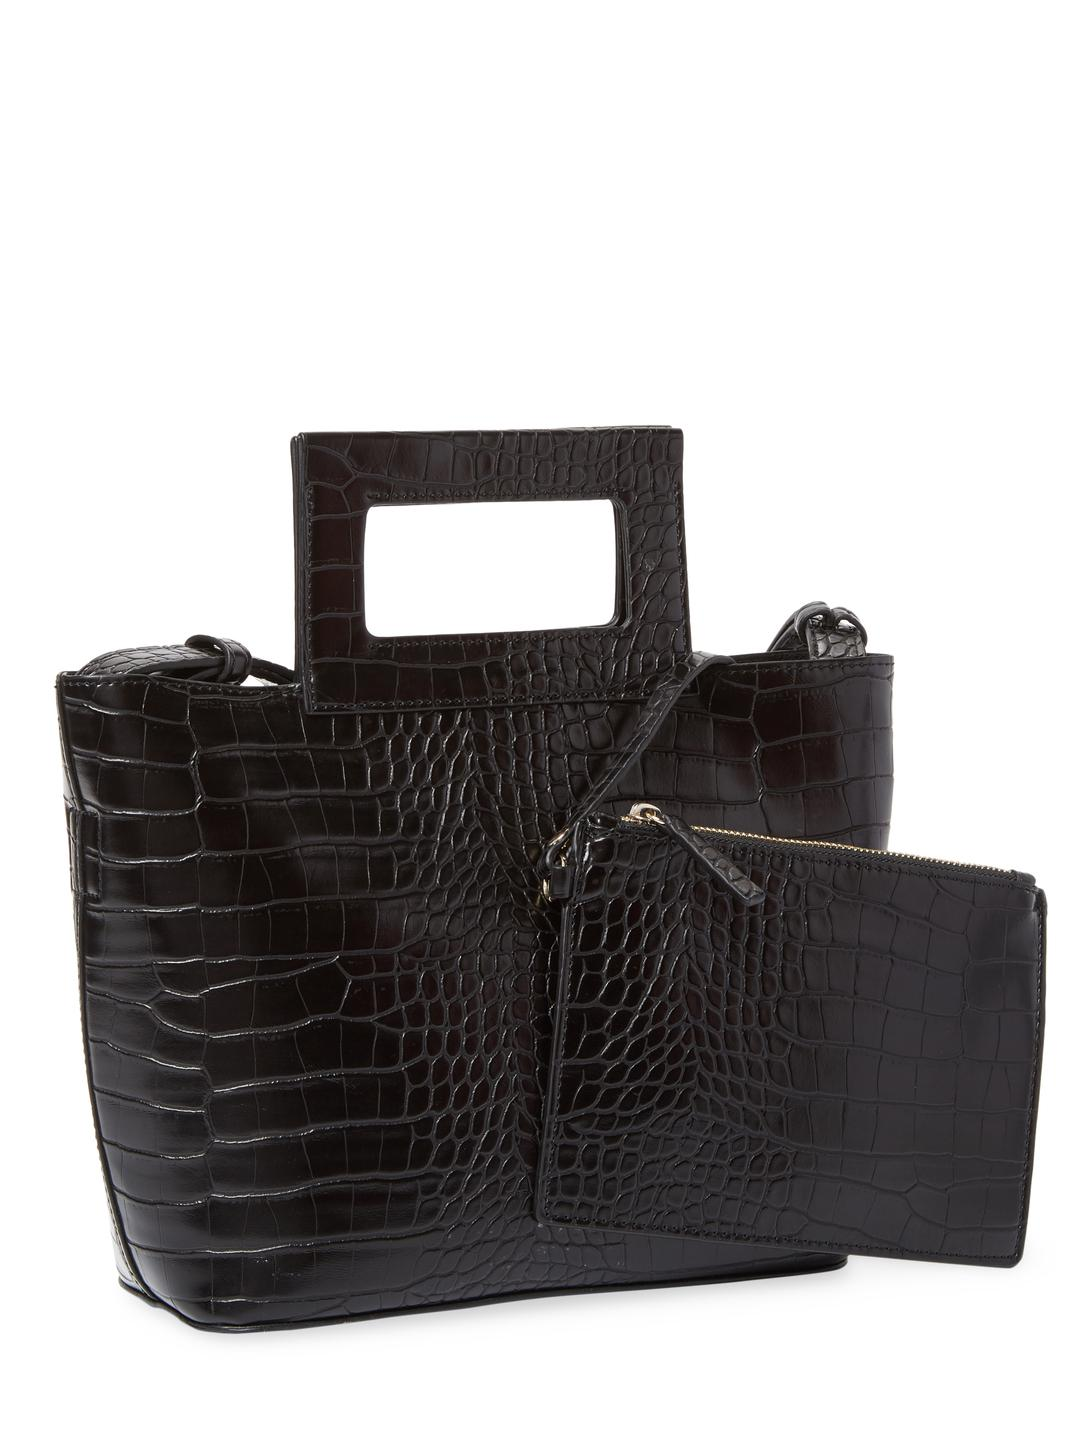 French Connection Corey Small Tote in Black